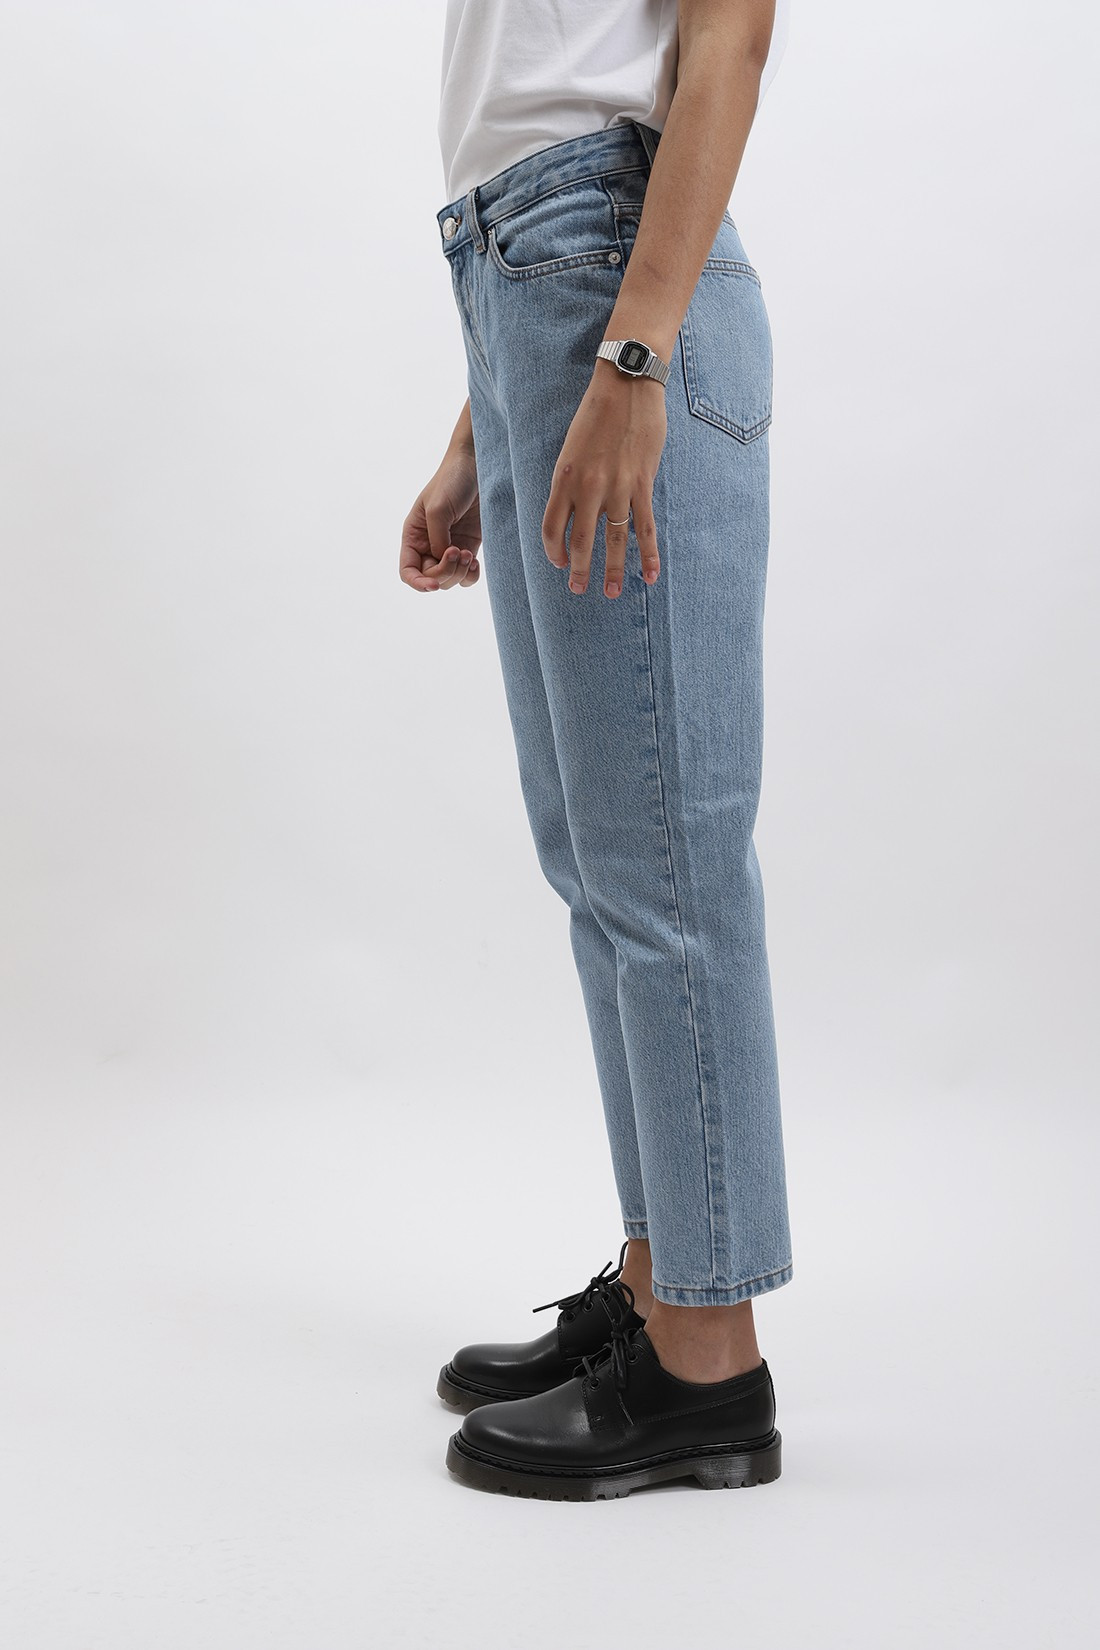 A.P.C. FOR WOMAN / Jean 80s Indigo delave